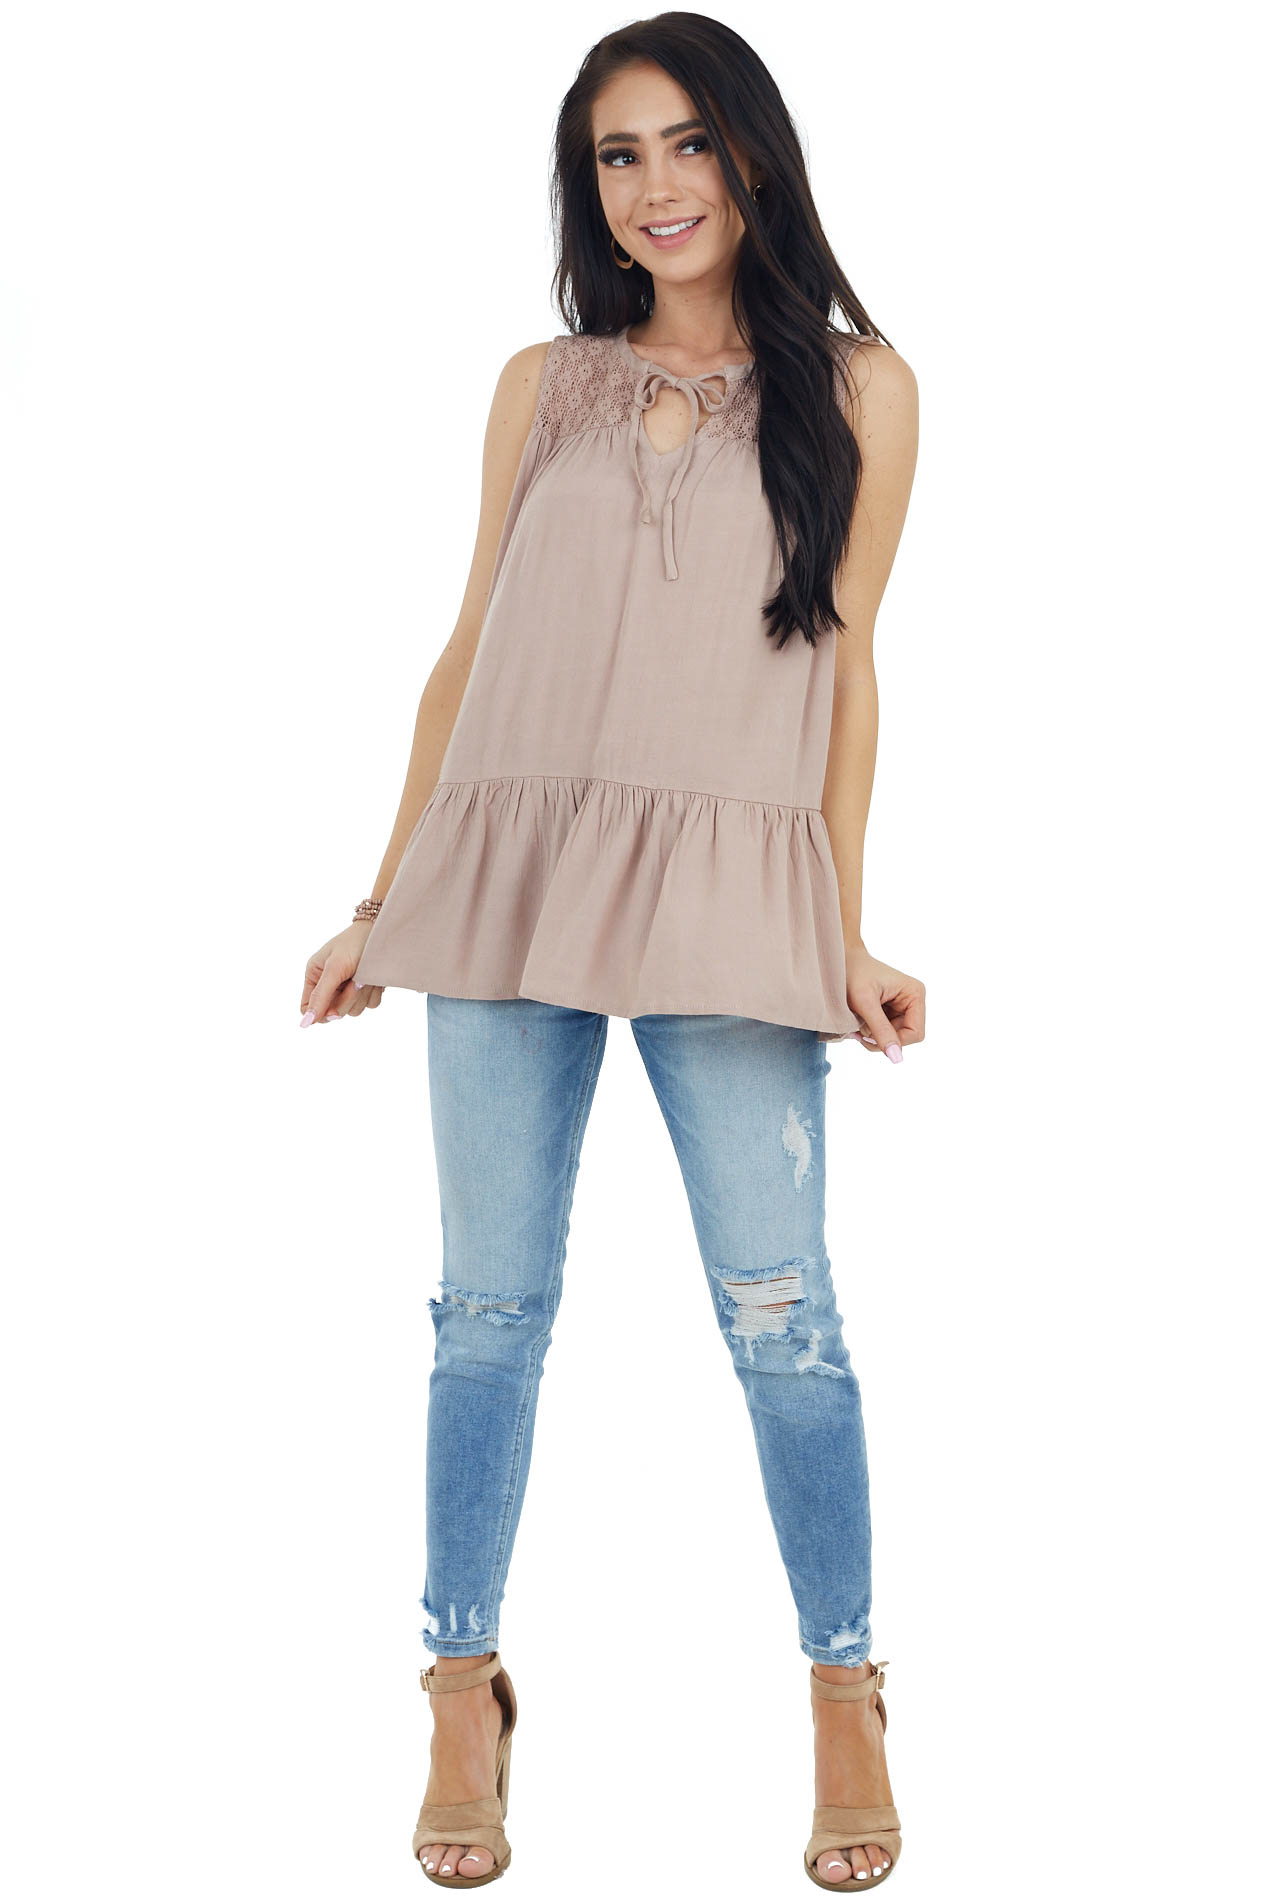 Latte Brown Peplum Tank Top with Crochet Lace Details